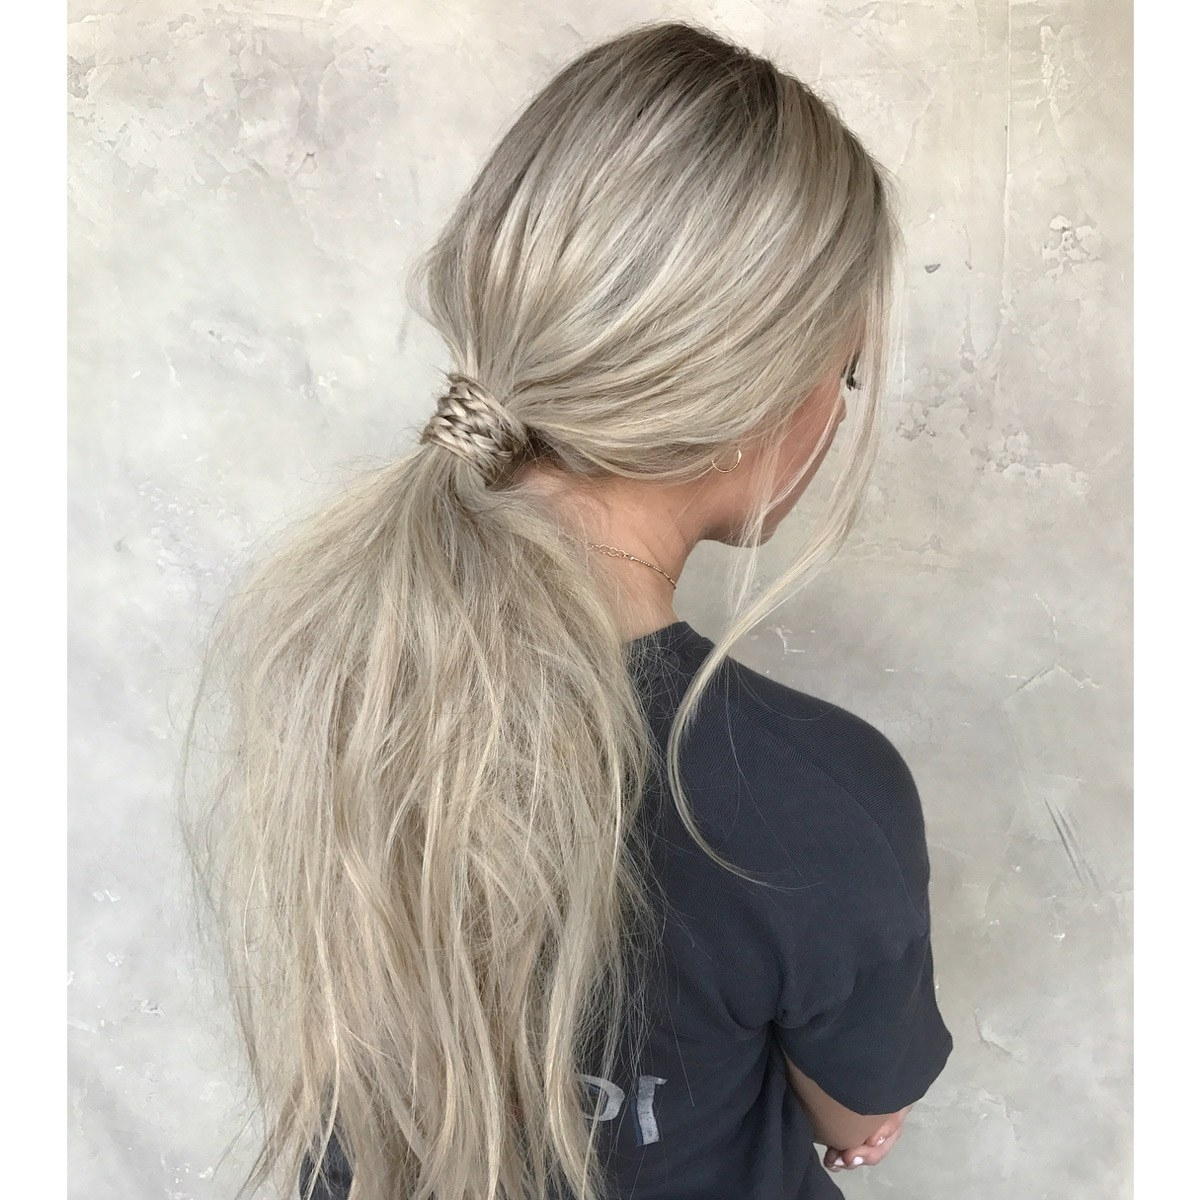 Glamour Intended For Current Loose And Looped Ponytail Hairstyles (Gallery 5 of 20)